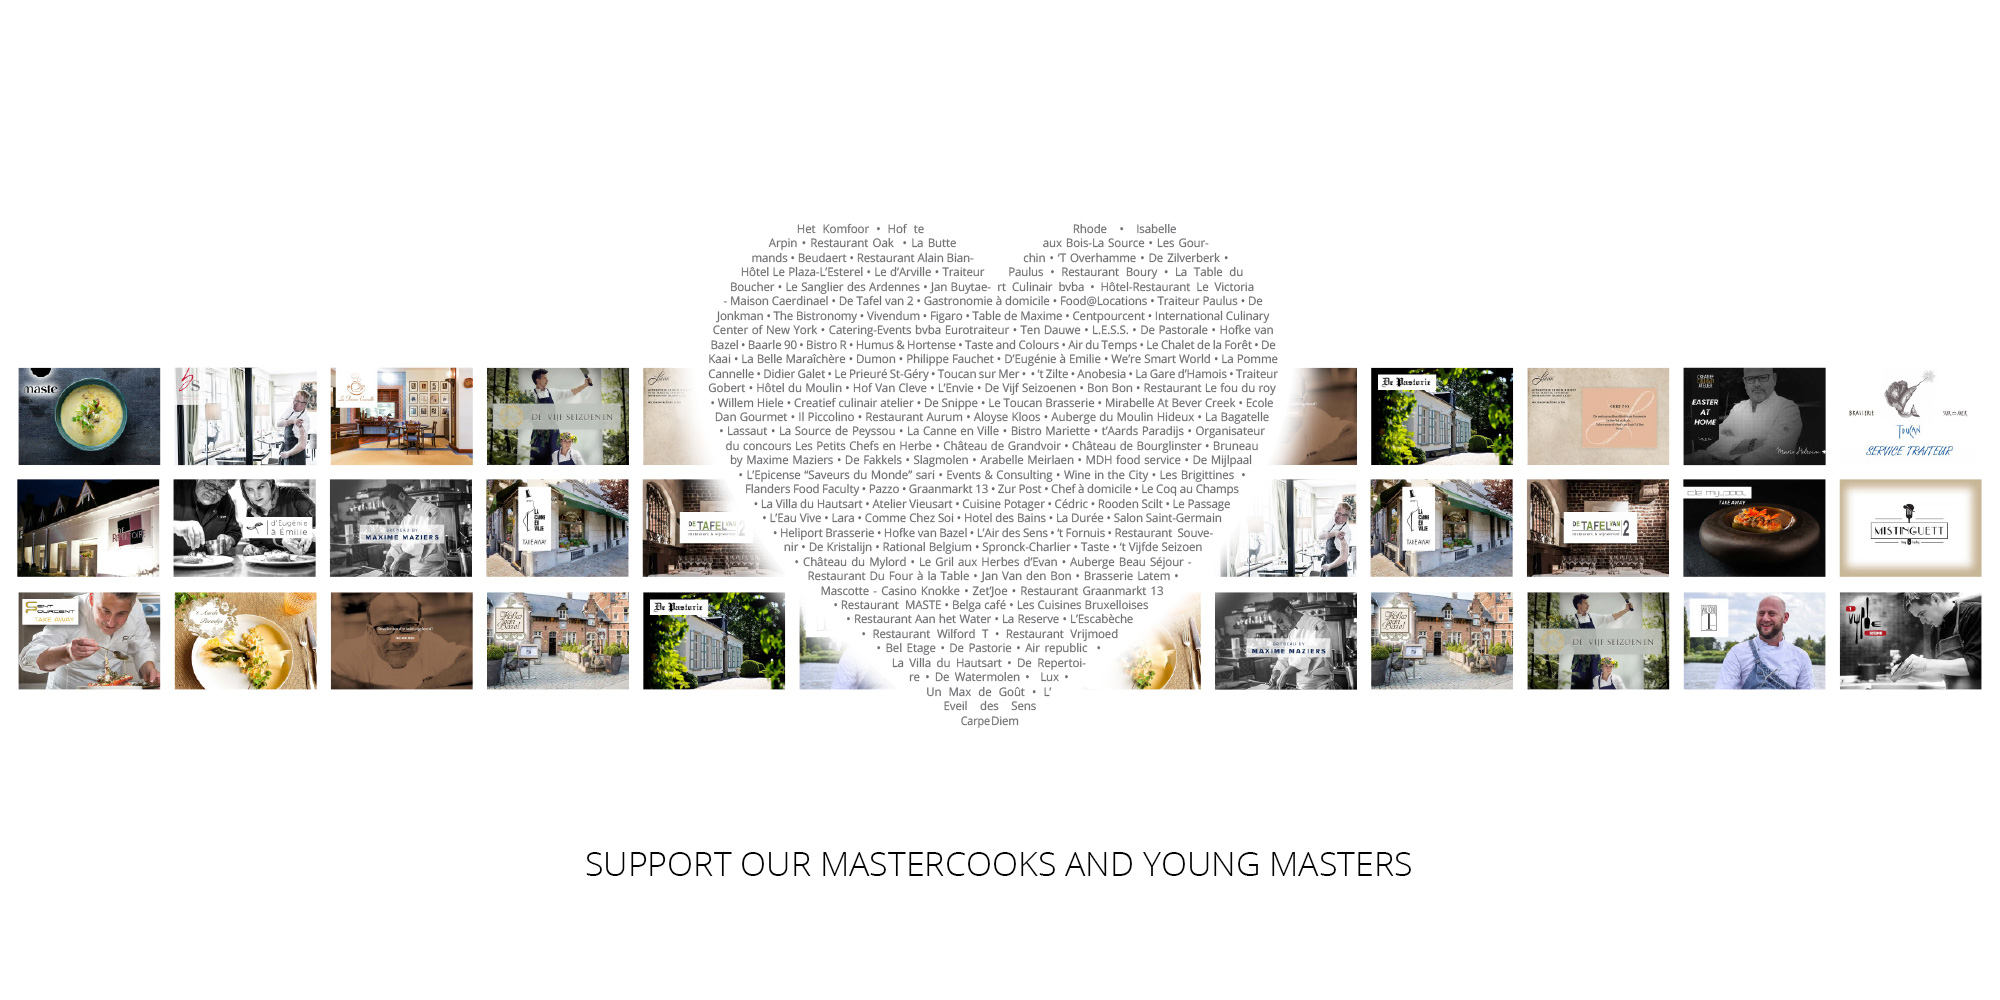 Support our Mastercooks and Young Masters